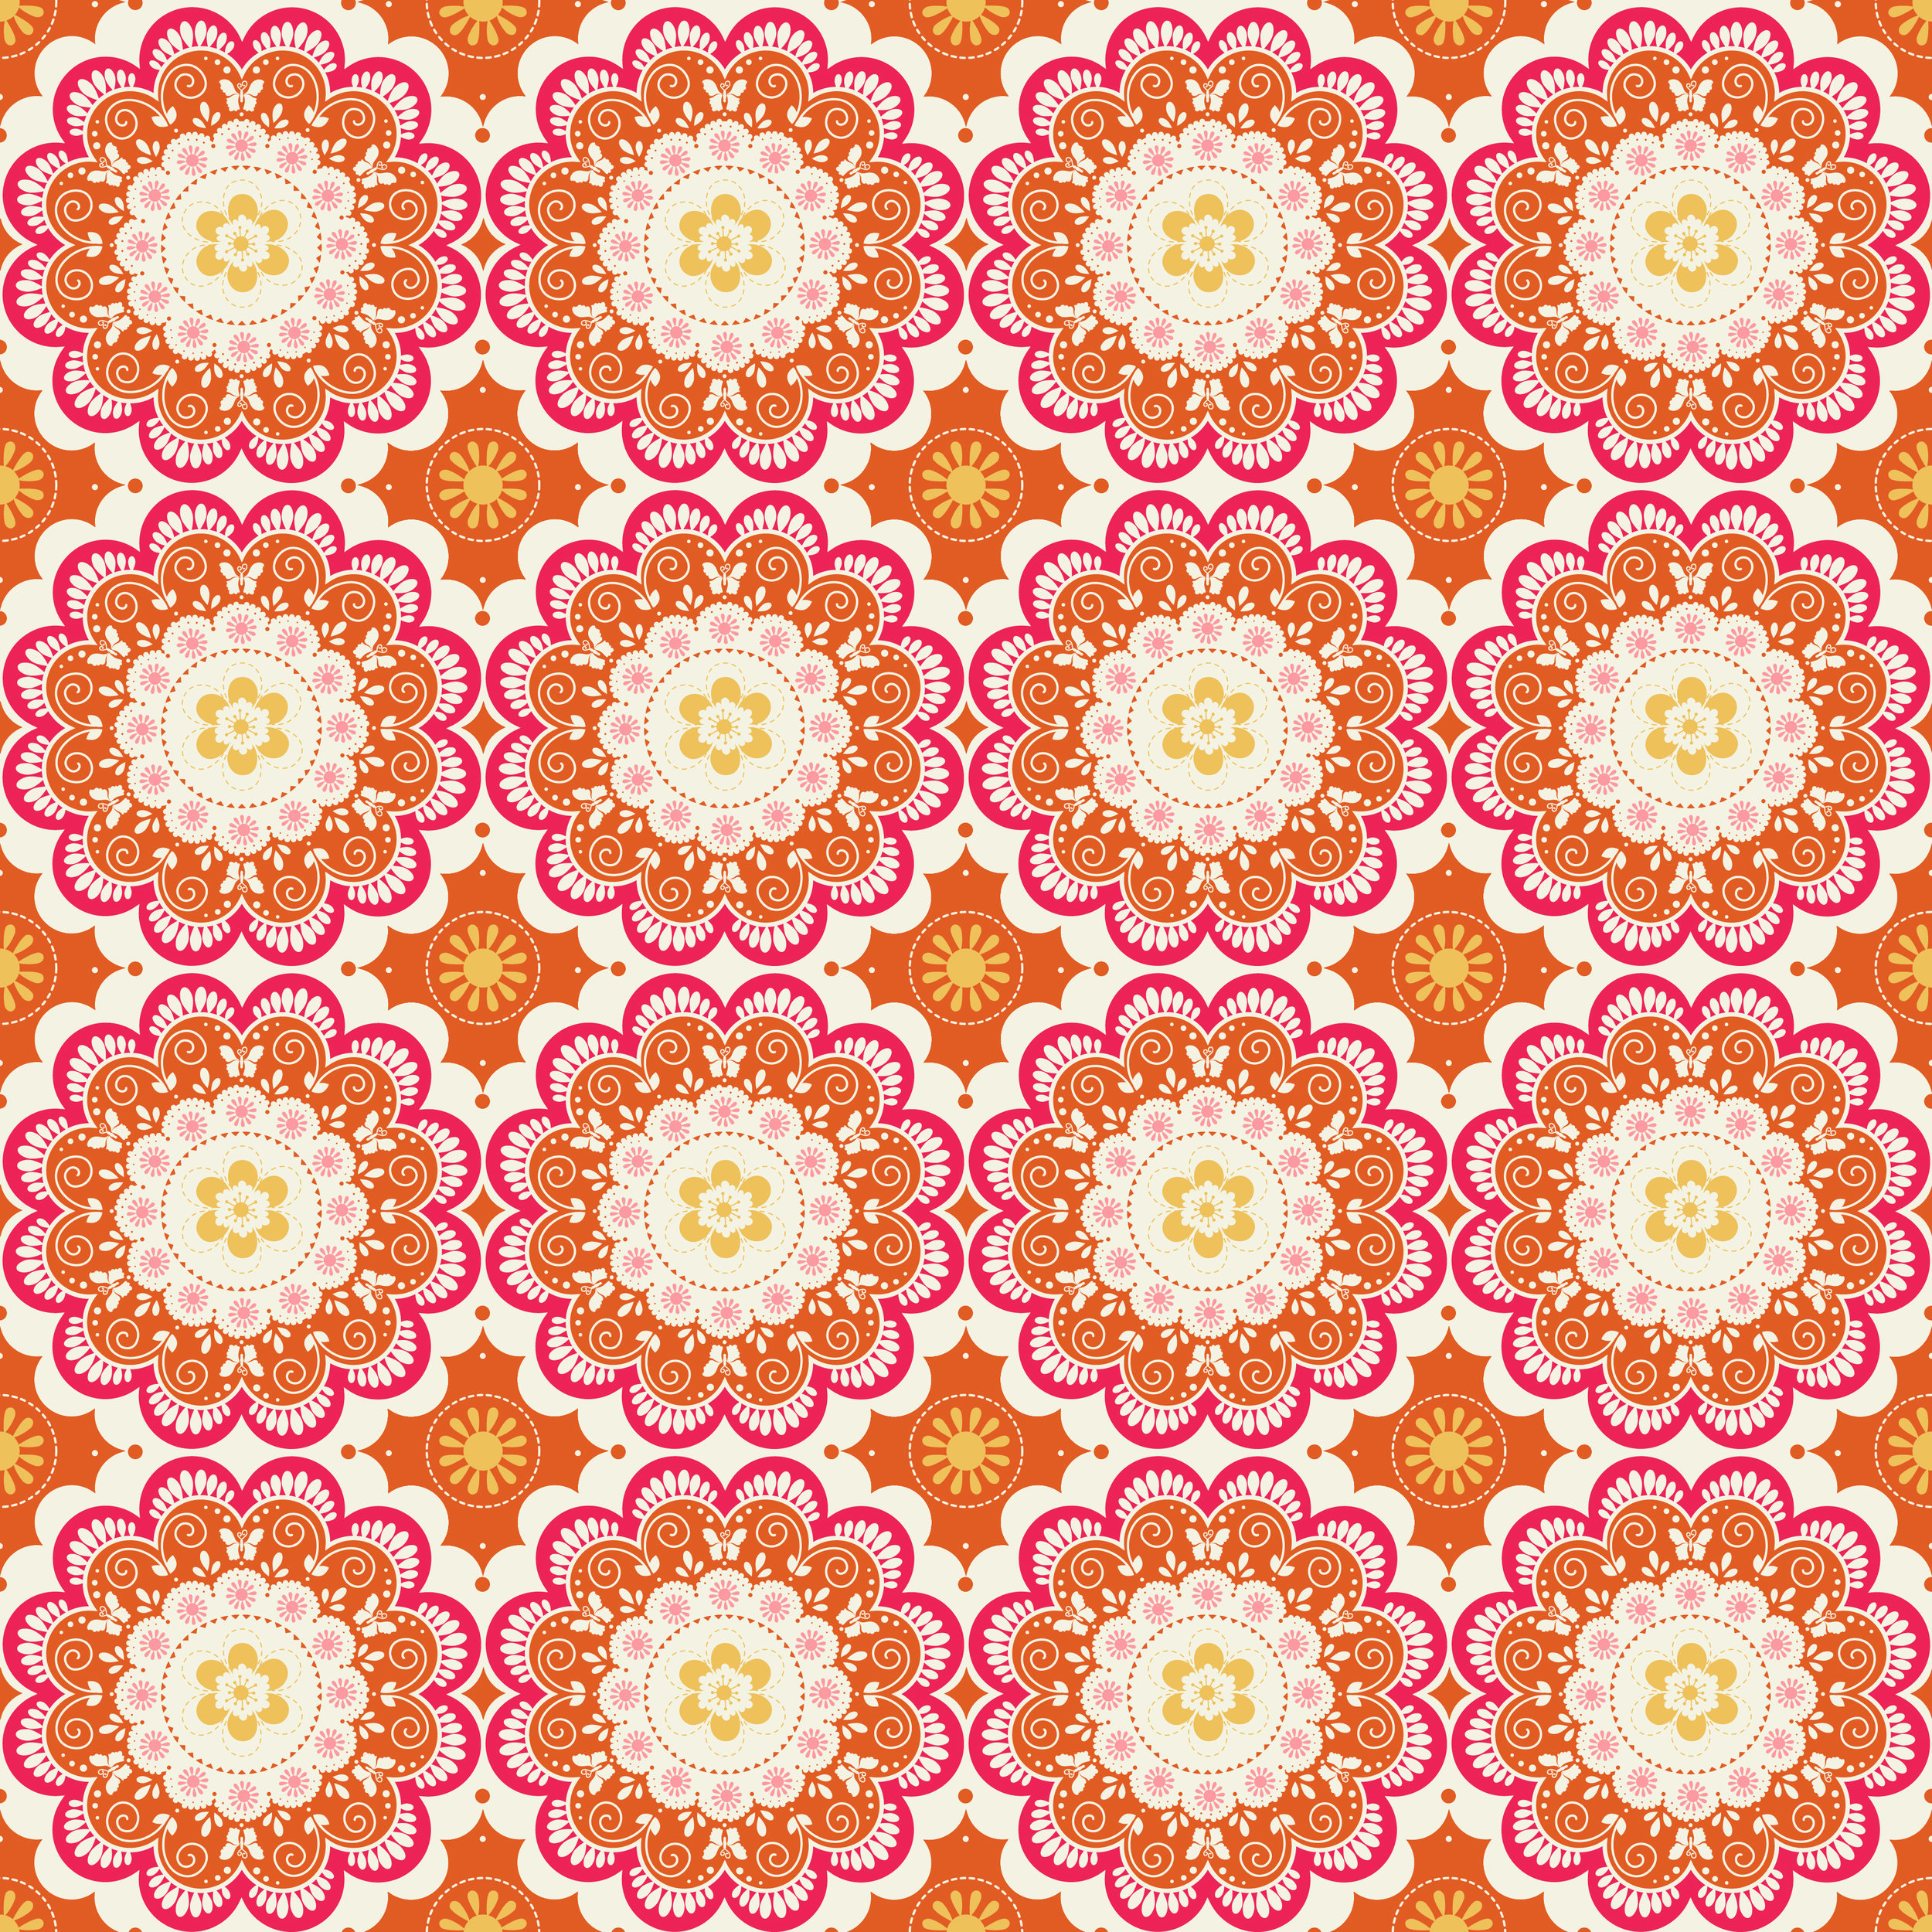 doily damask orange 300-01.jpg